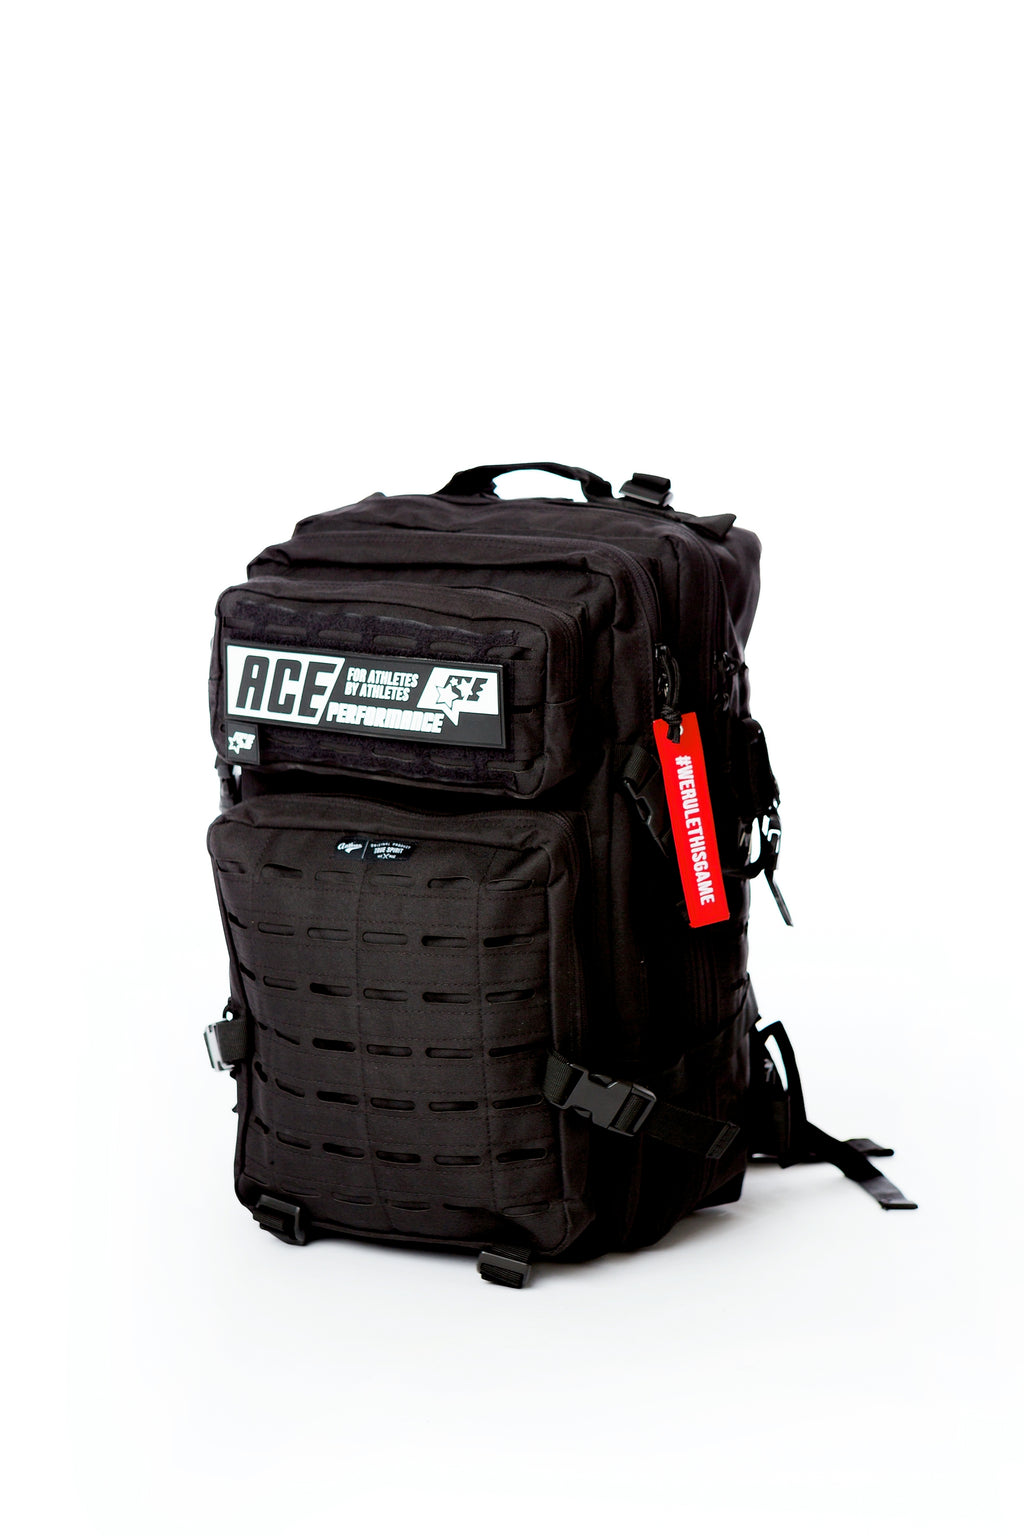 DEPLOYMENT BACK PACK - BLACK - ACEPERFORMANCE